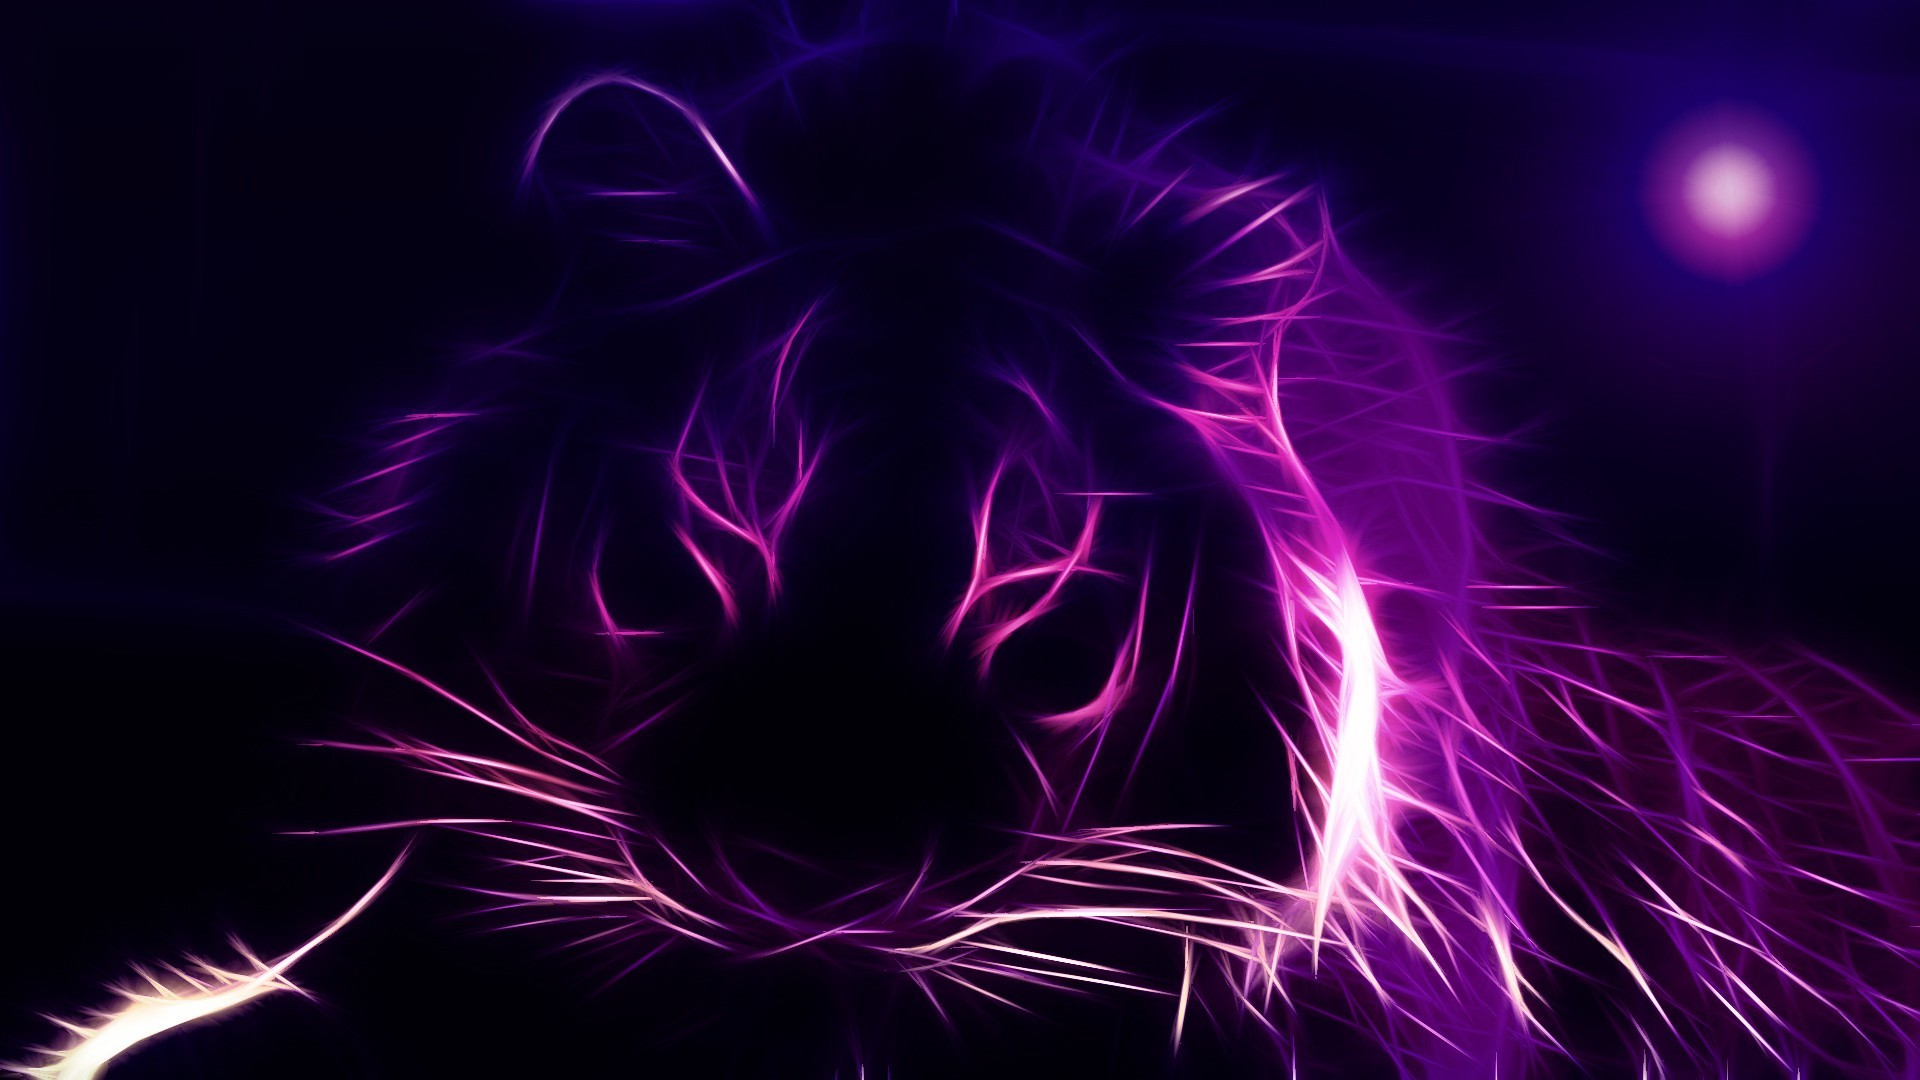 From Neon Tiger Android Wallpapers